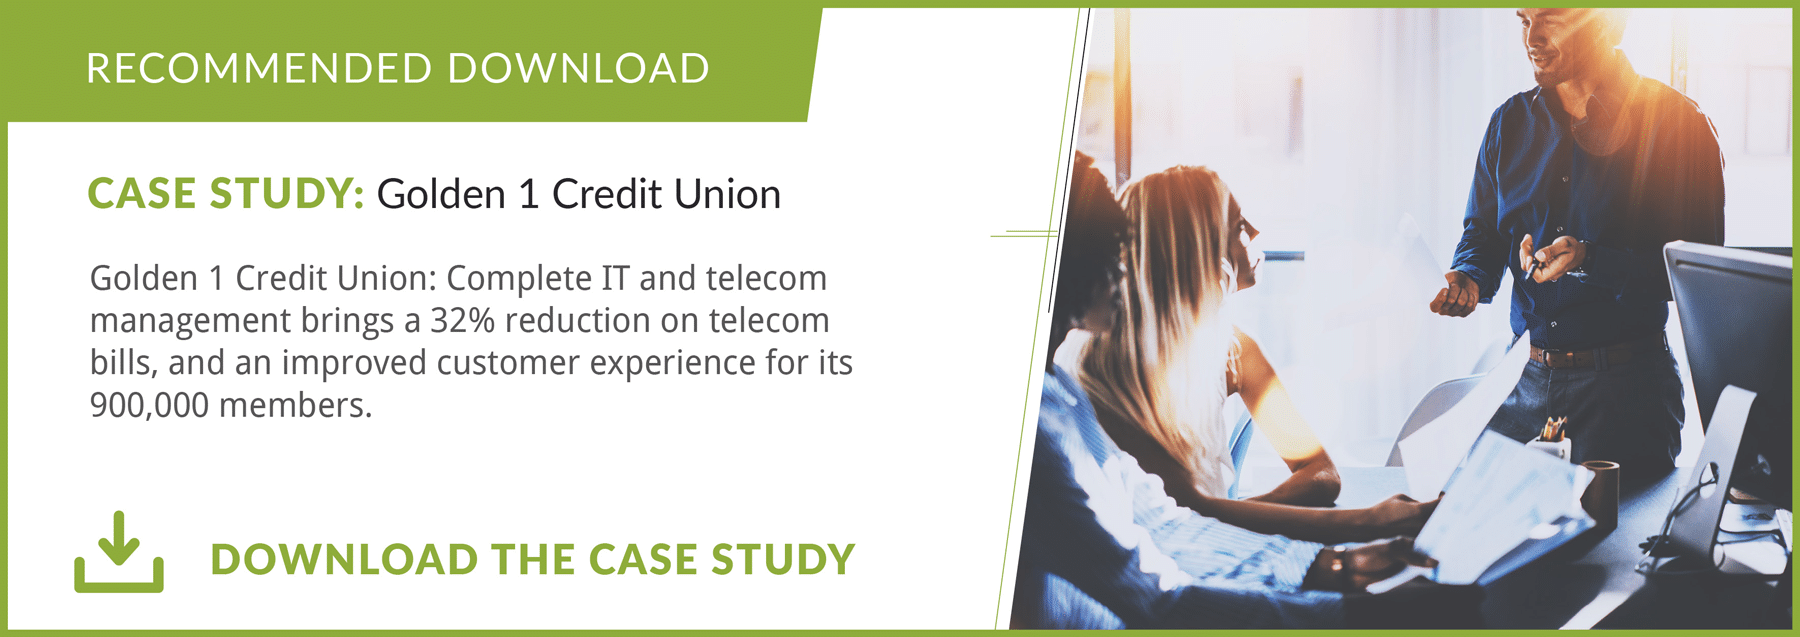 Case Study: Golden 1 Credit Union